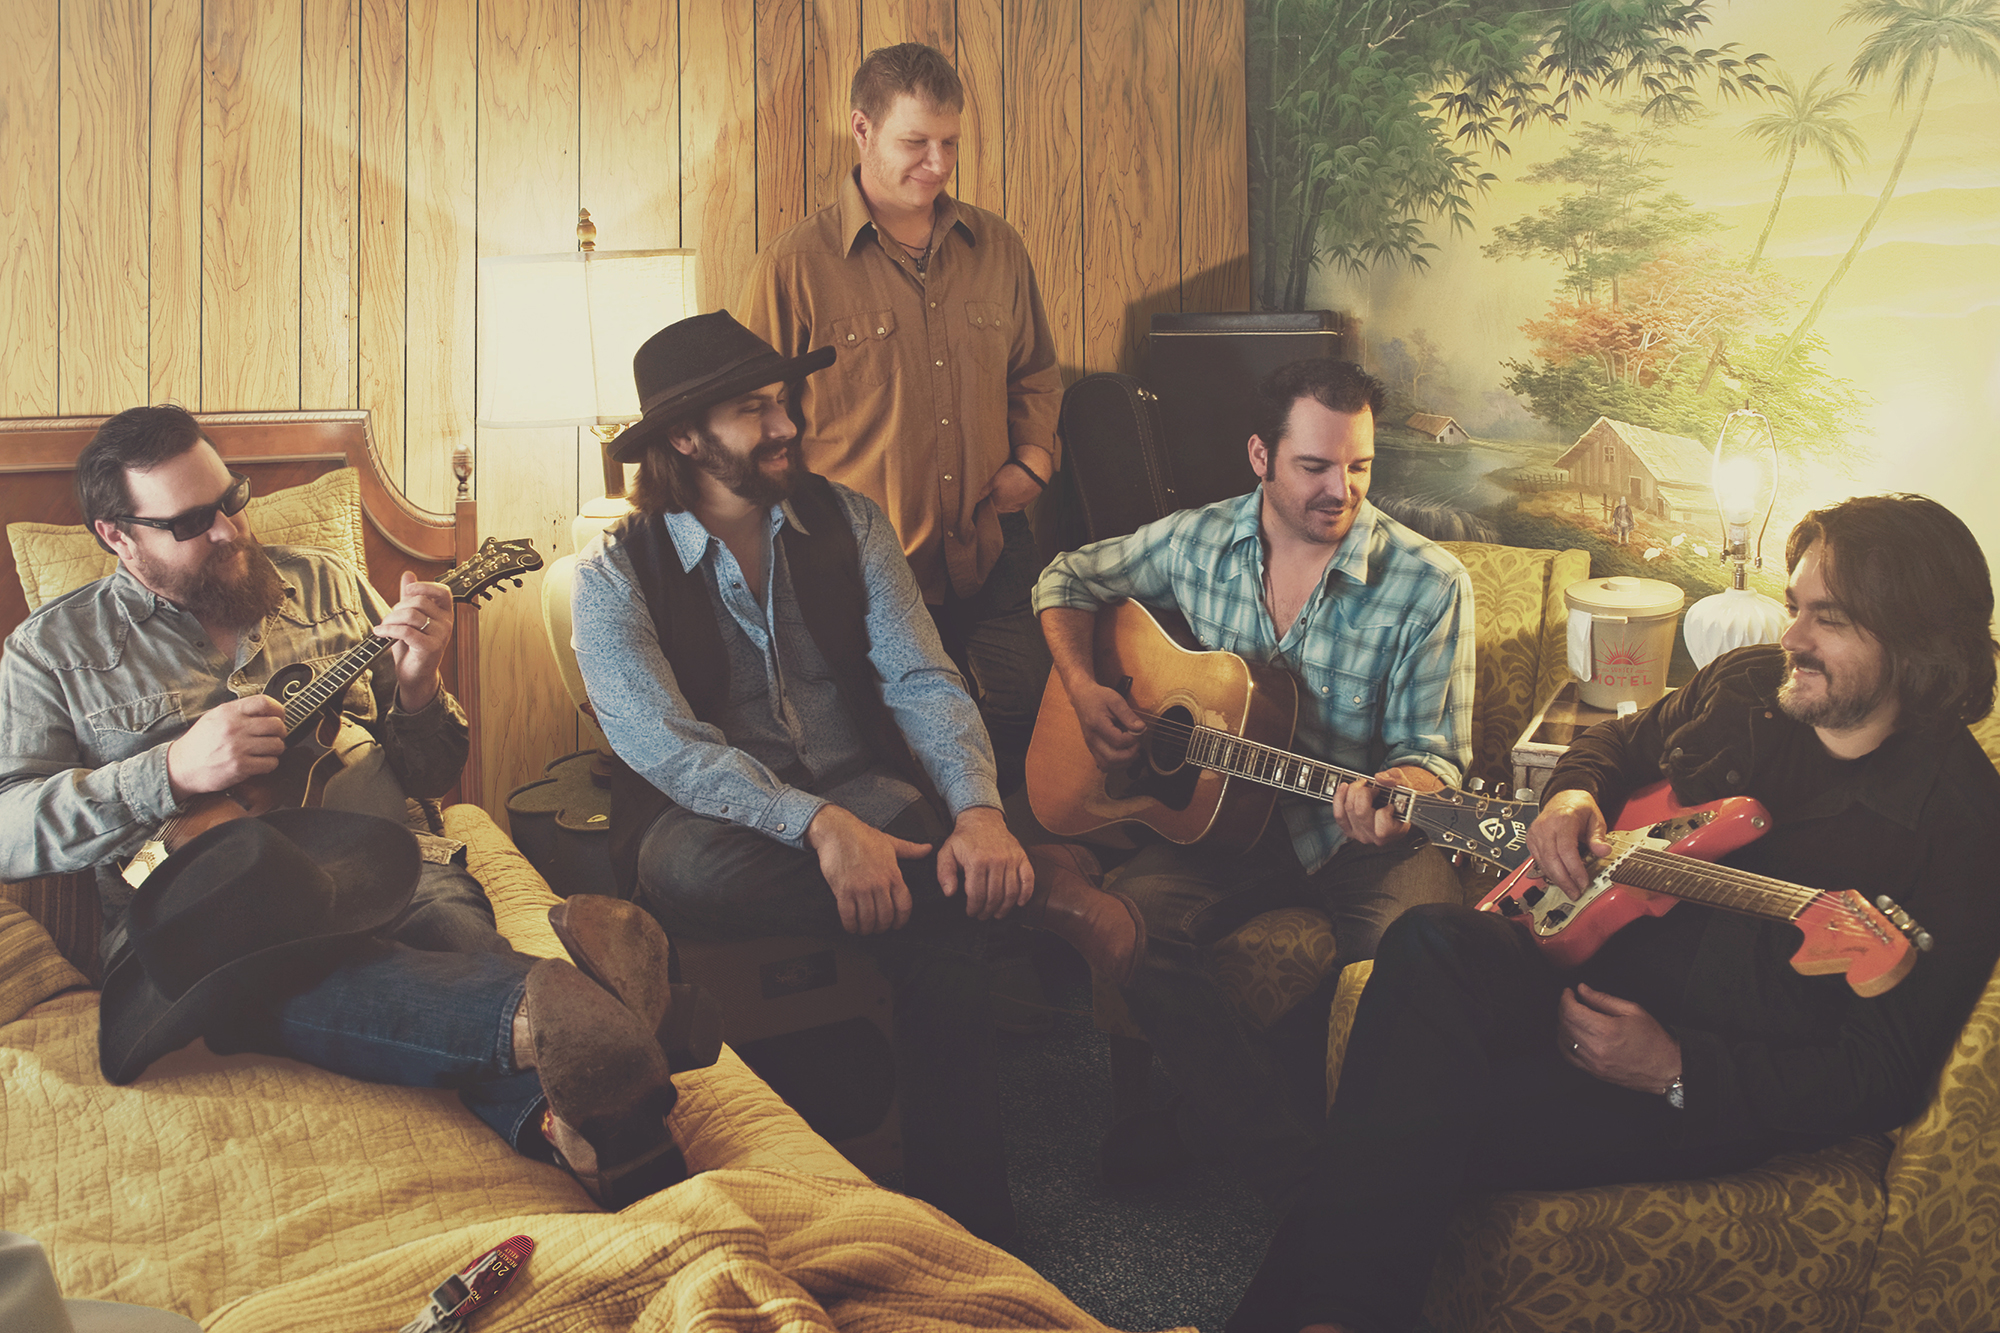 Reckless Kelly Announce New Album 'Bulletproof Live'